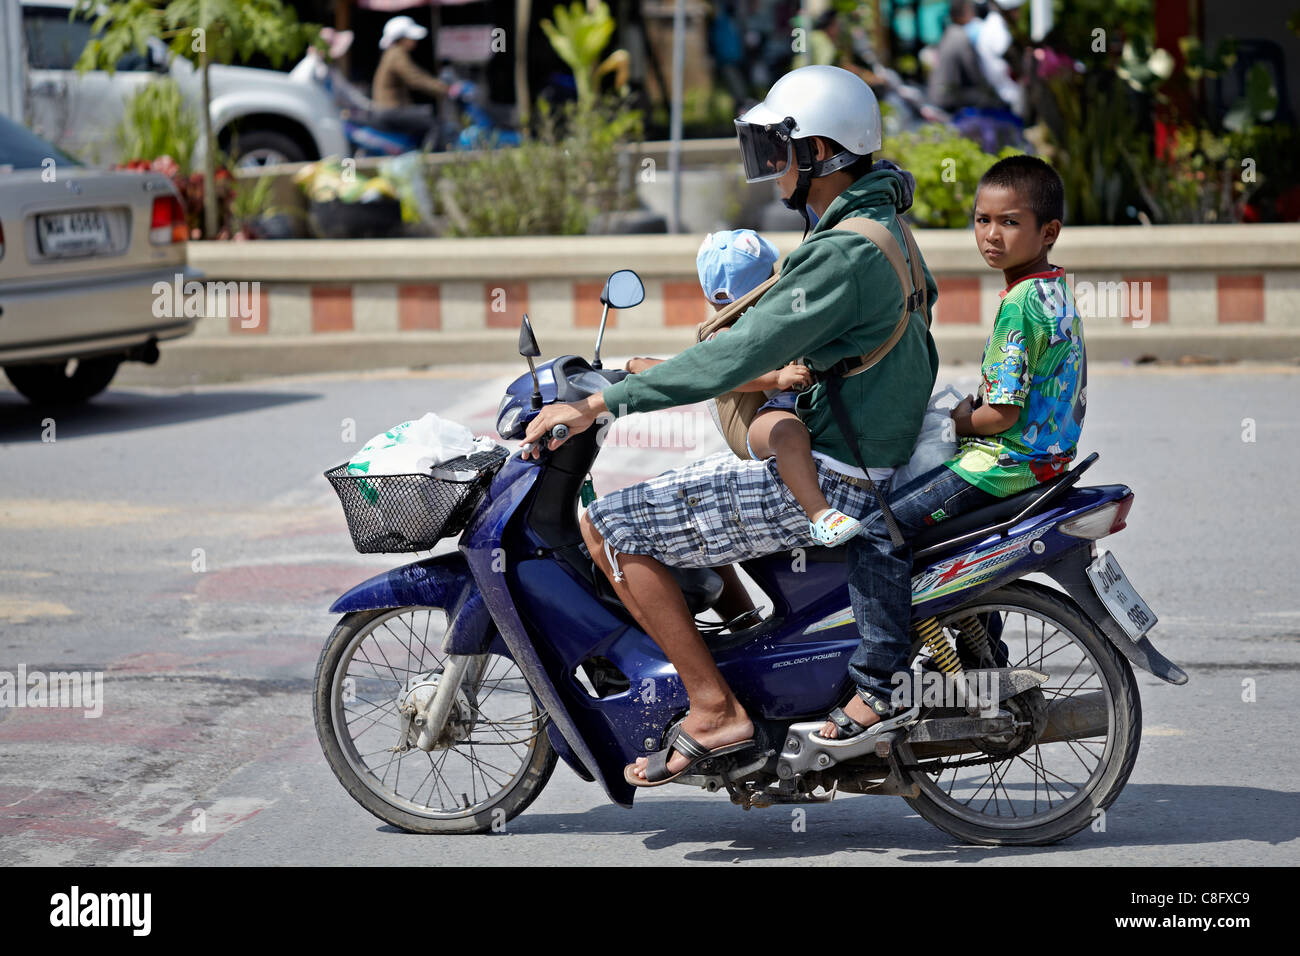 Mother precariously carrying her children on a motorcycle. She is wearing a crash helmet but the children are not. - Stock Image